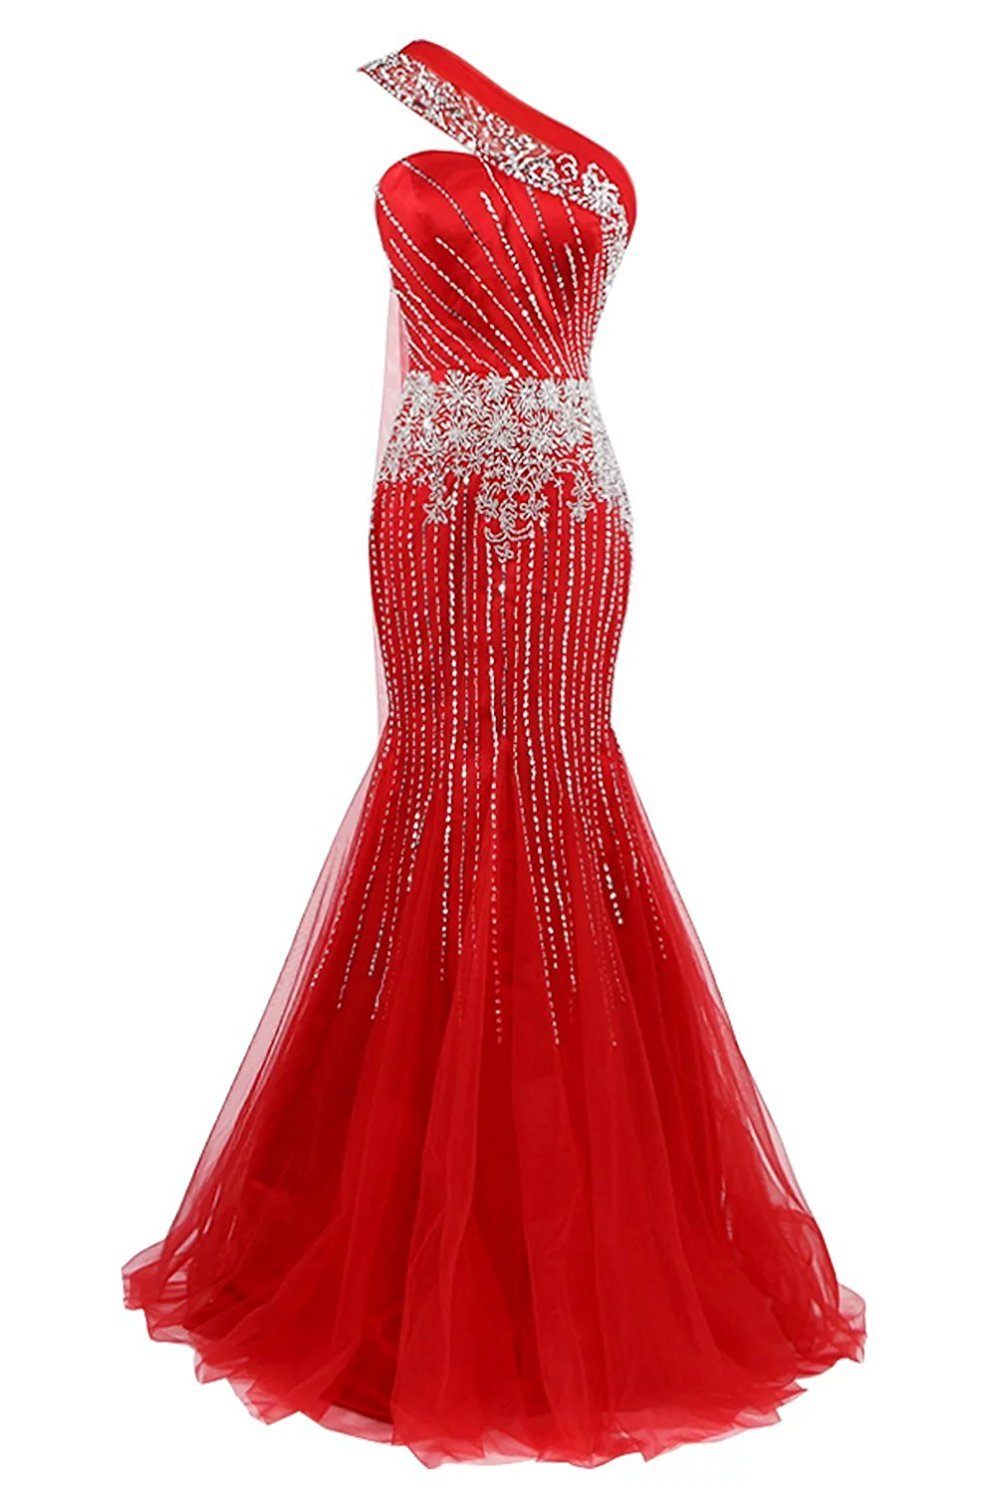 Primary image for Mermaid Beaded Evening Dresses for Women One Shoulder Tulle Prom Dresses Cheap